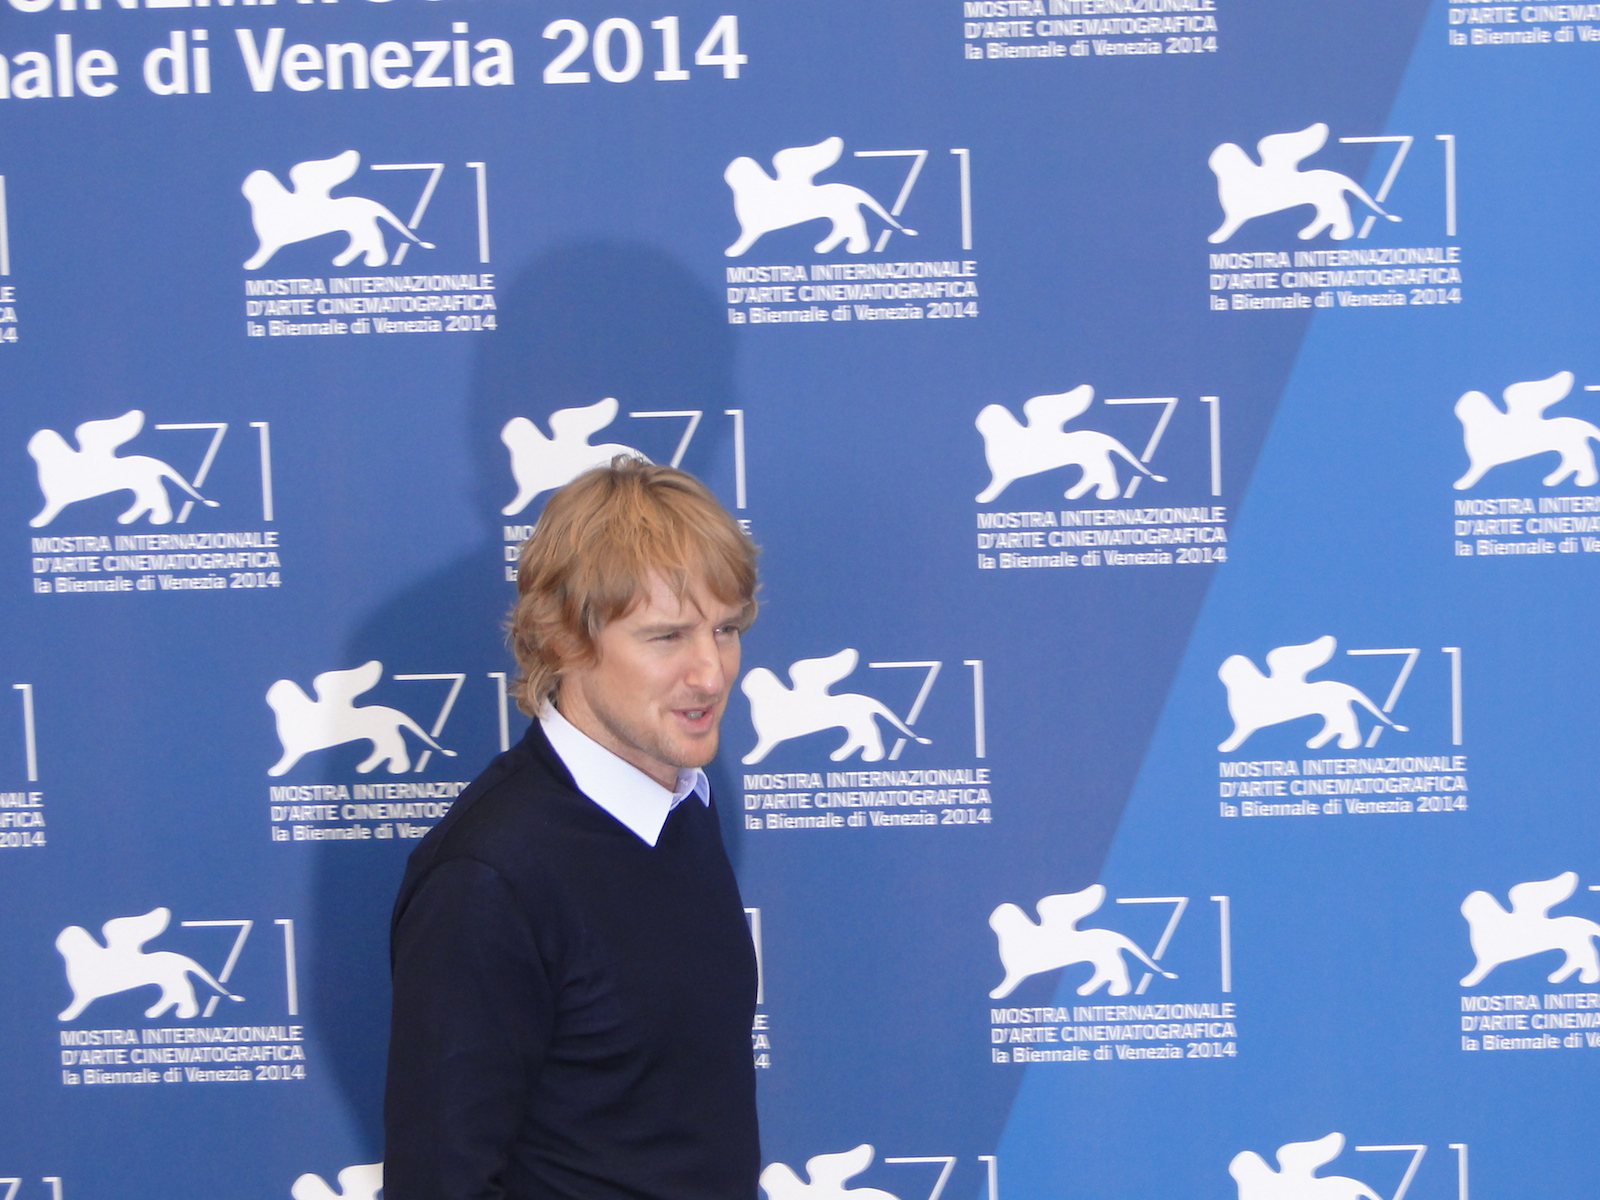 Venezia 2014: Owen Wilson al photocall per il film She's Funny That Way